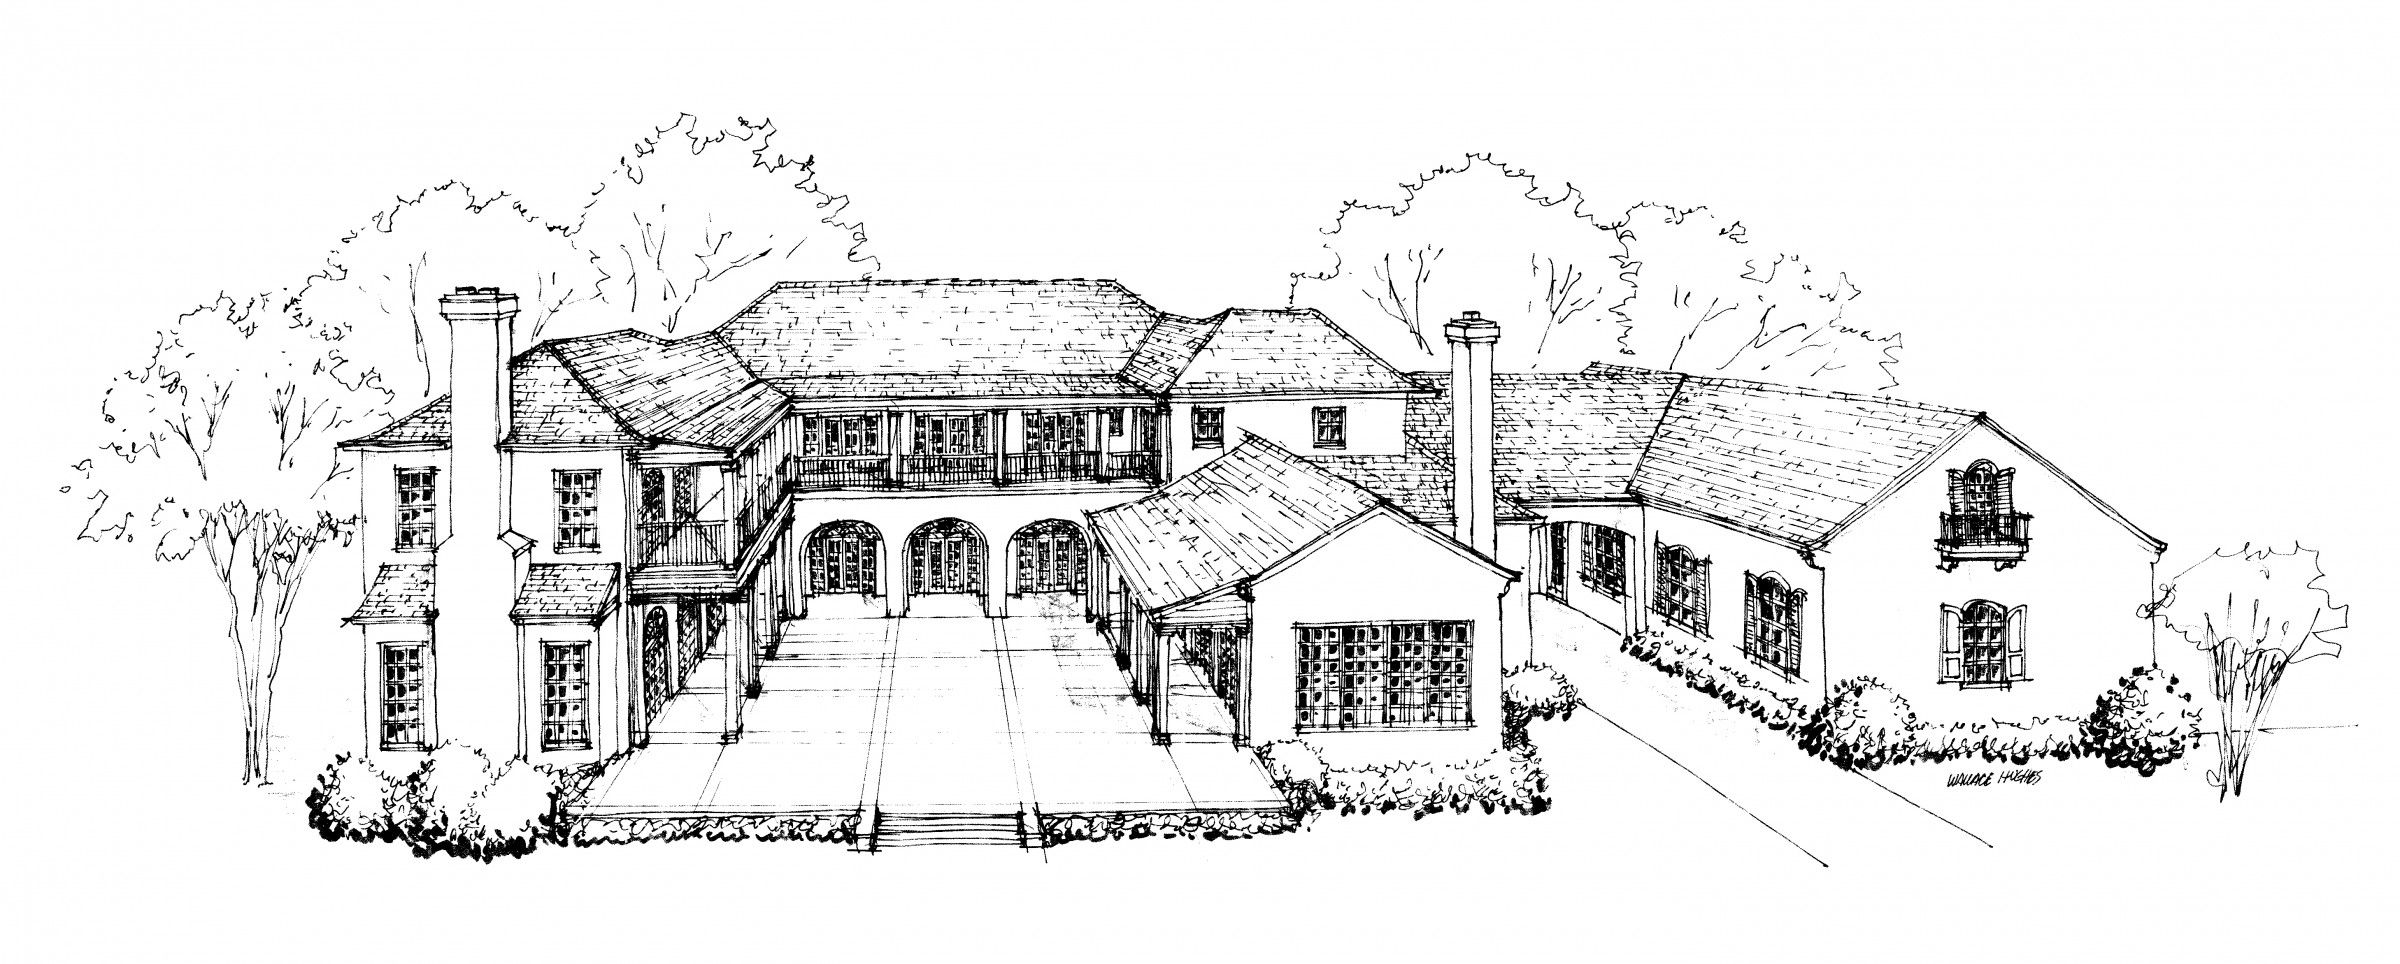 Rear exterior architectural sketch for an Italian Mediterranean Villa in Dallas, TX